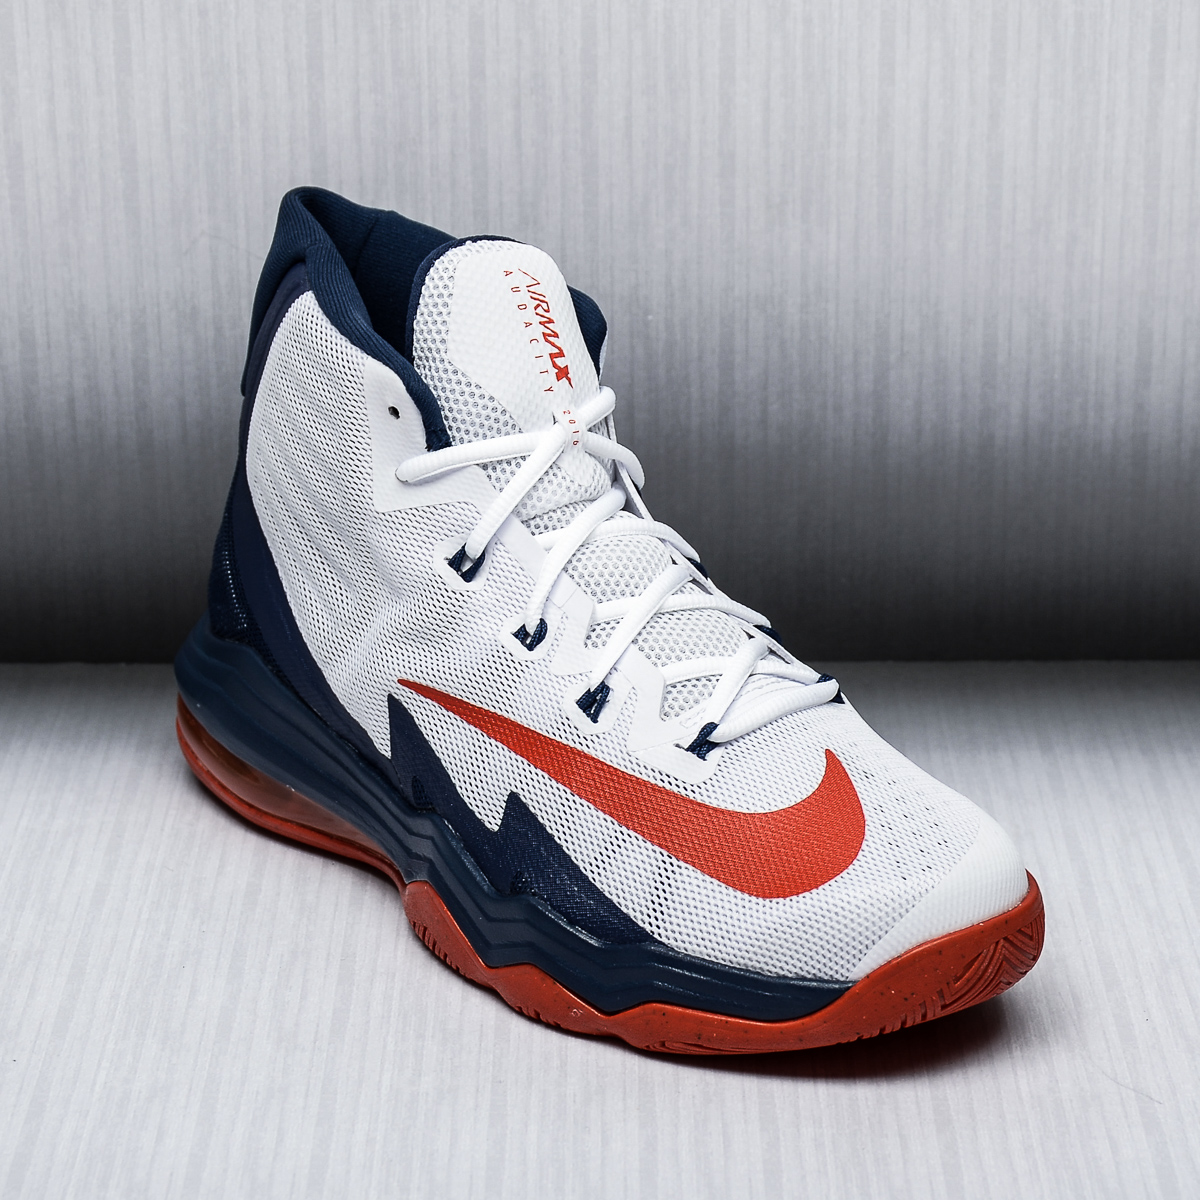 Nike Air Max Audacity 2016 USA Basketball Shoes ...